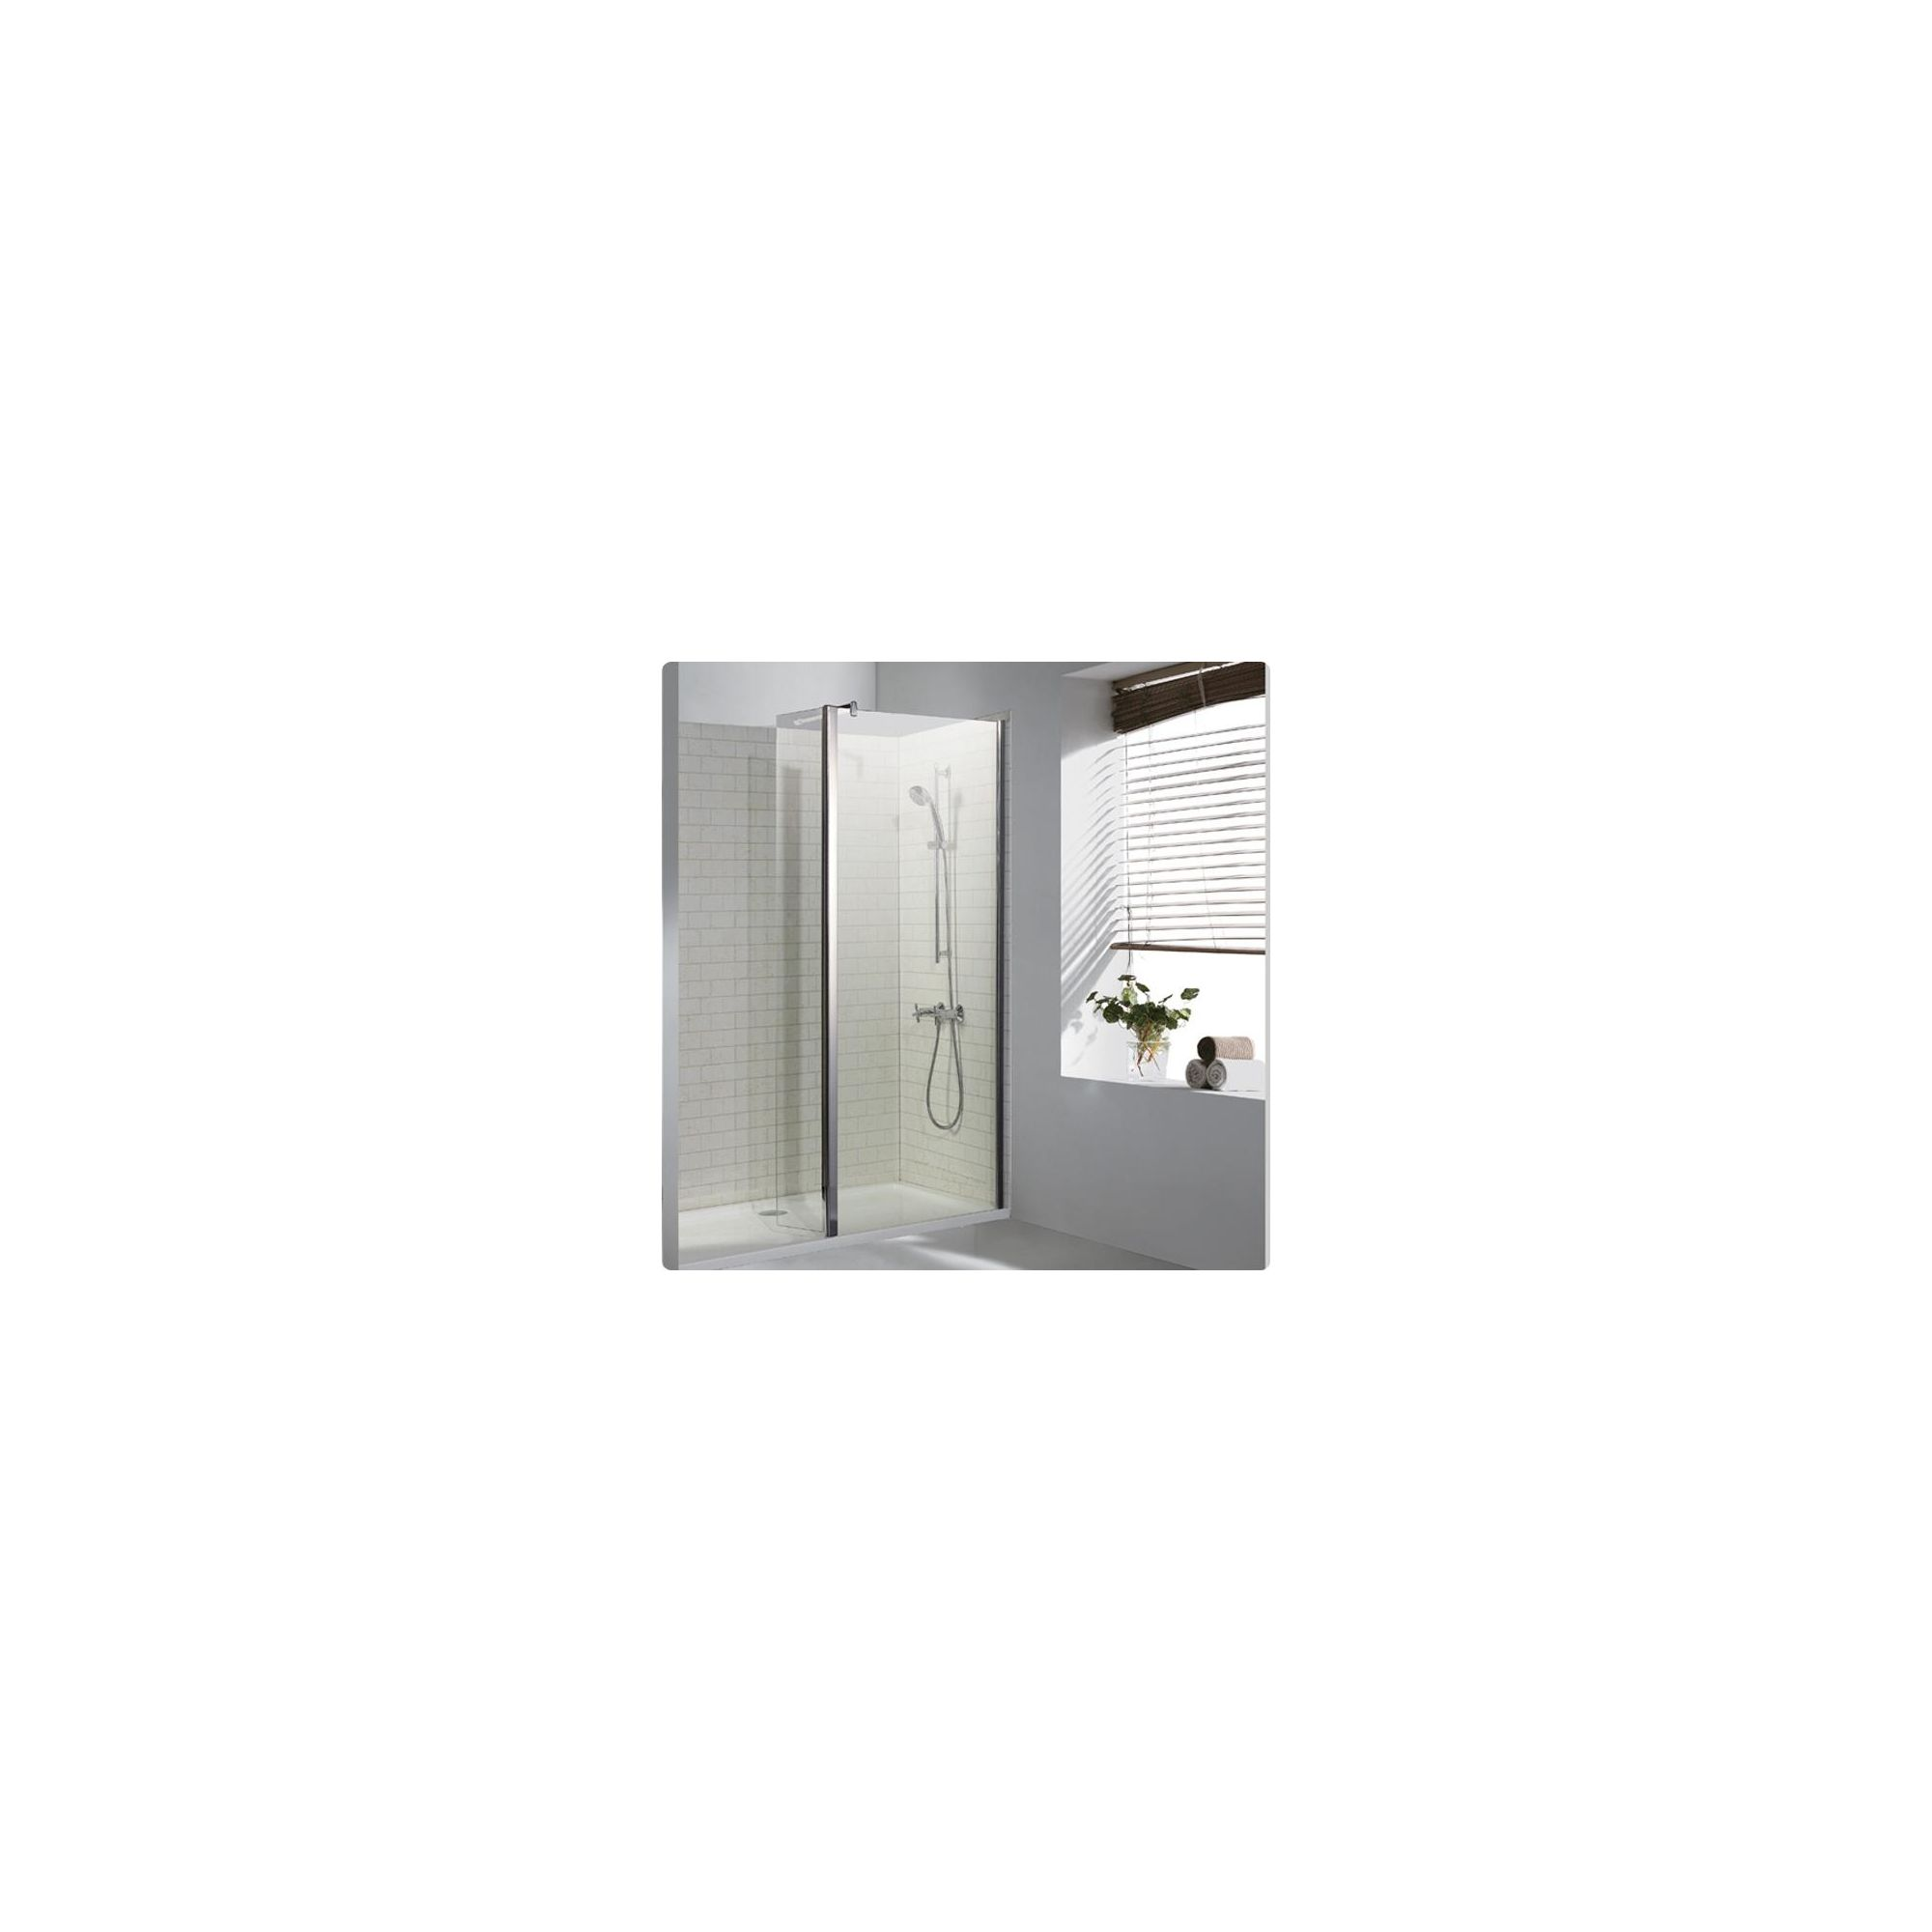 Duchy Choice Silver Walk-In Shower Enclosure 1400mm x 900mm (Complete with Tray), 6mm Glass at Tesco Direct